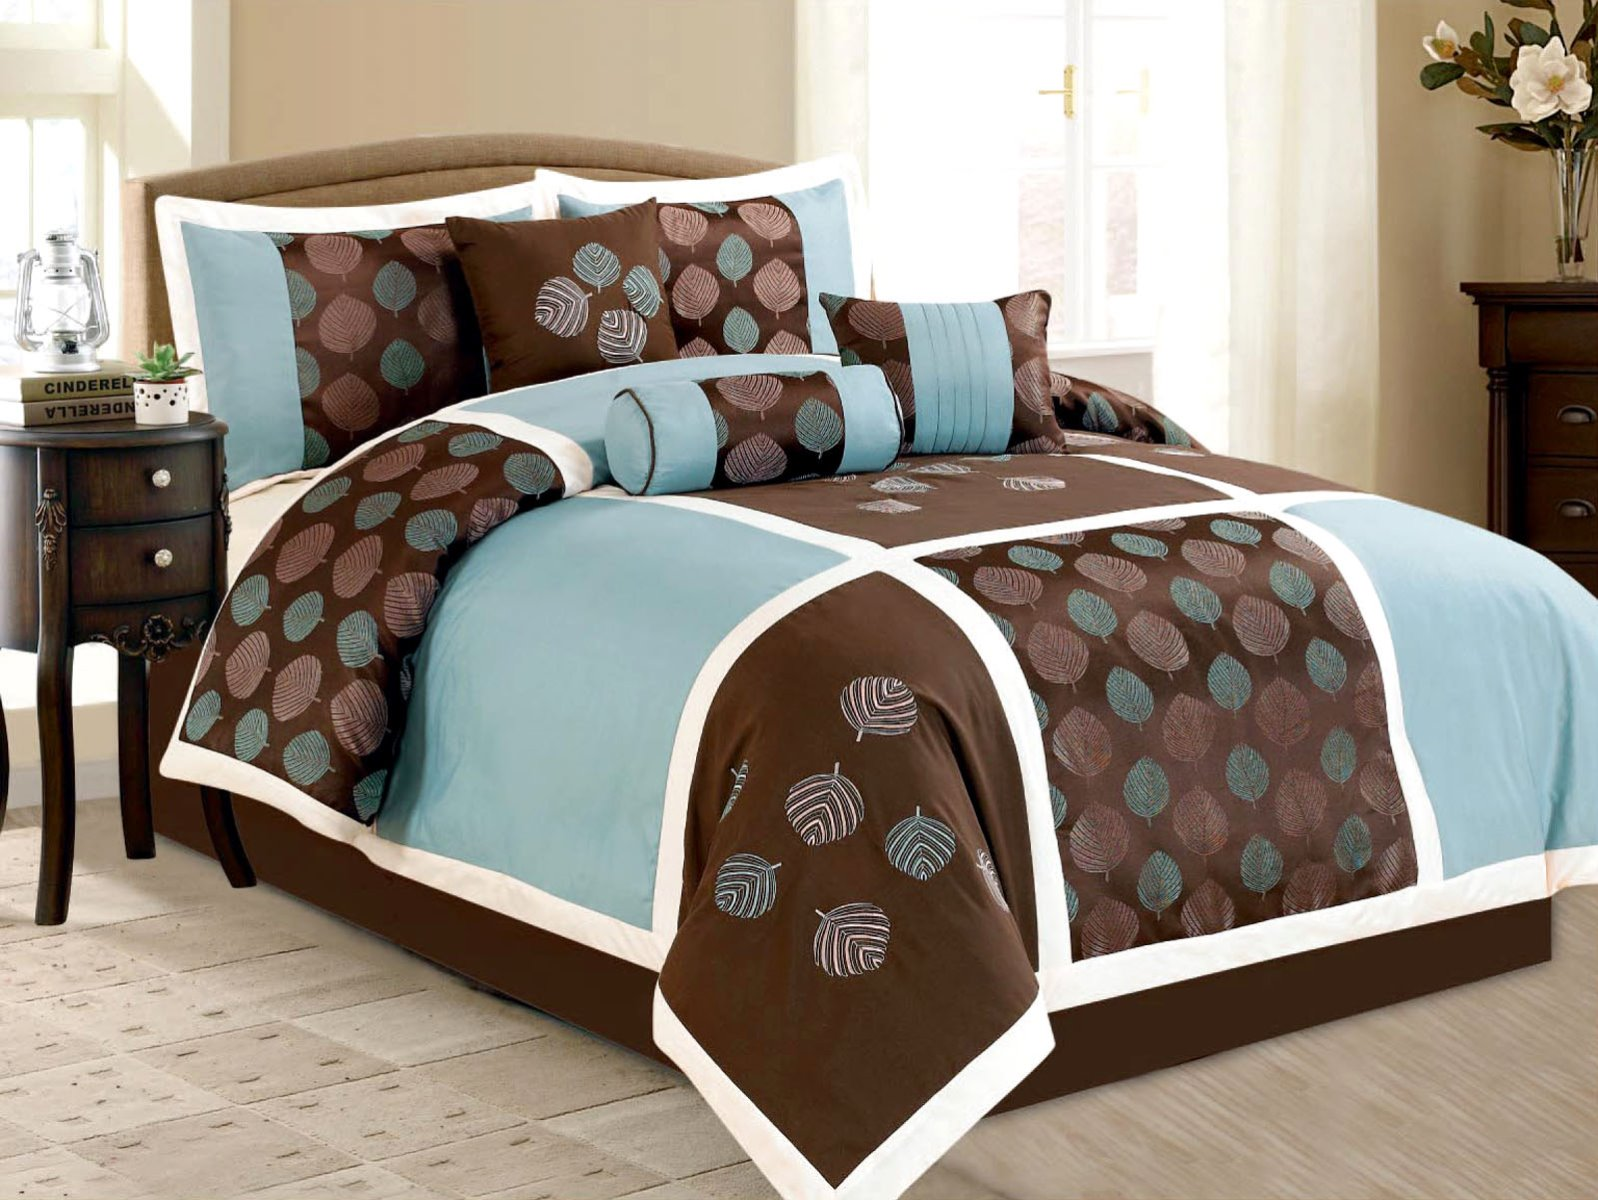 Jaba USA 7-Piece Embroidery Floral Leaf Comforter Set Queen Bed-In-A-Bag Brown, Blue, Pink at Sears.com